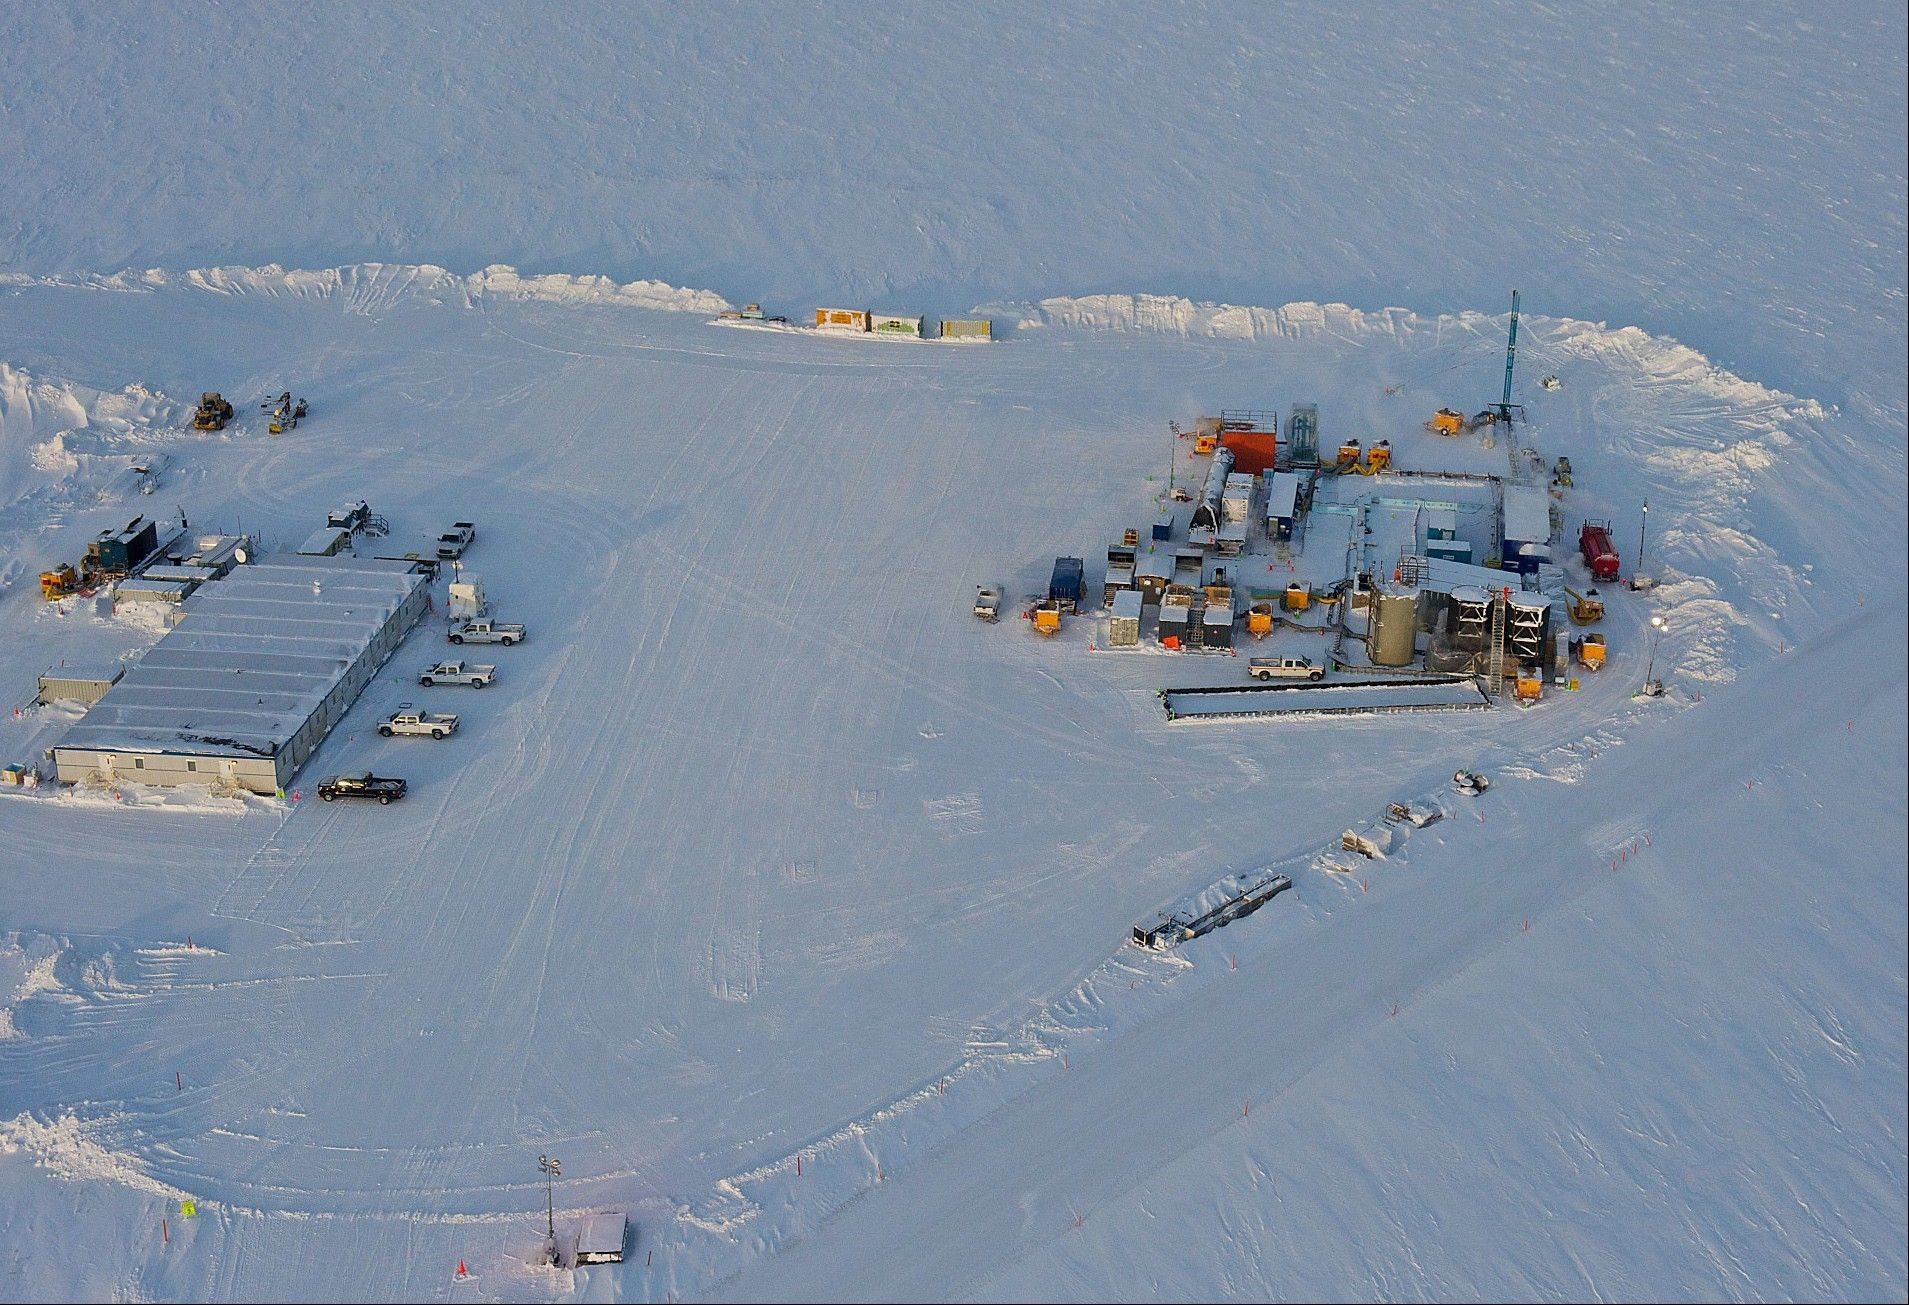 This drill rig at Prudhoe Bay on Alaska's North Slope is testing a method for extracting methane from methane hydrate. A half mile below the ground at Prudhoe Bay, above the vast oil field that helped trigger construction of the trans-Alaska pipeline, a drill rig has tapped what might one day be the next big energy source.